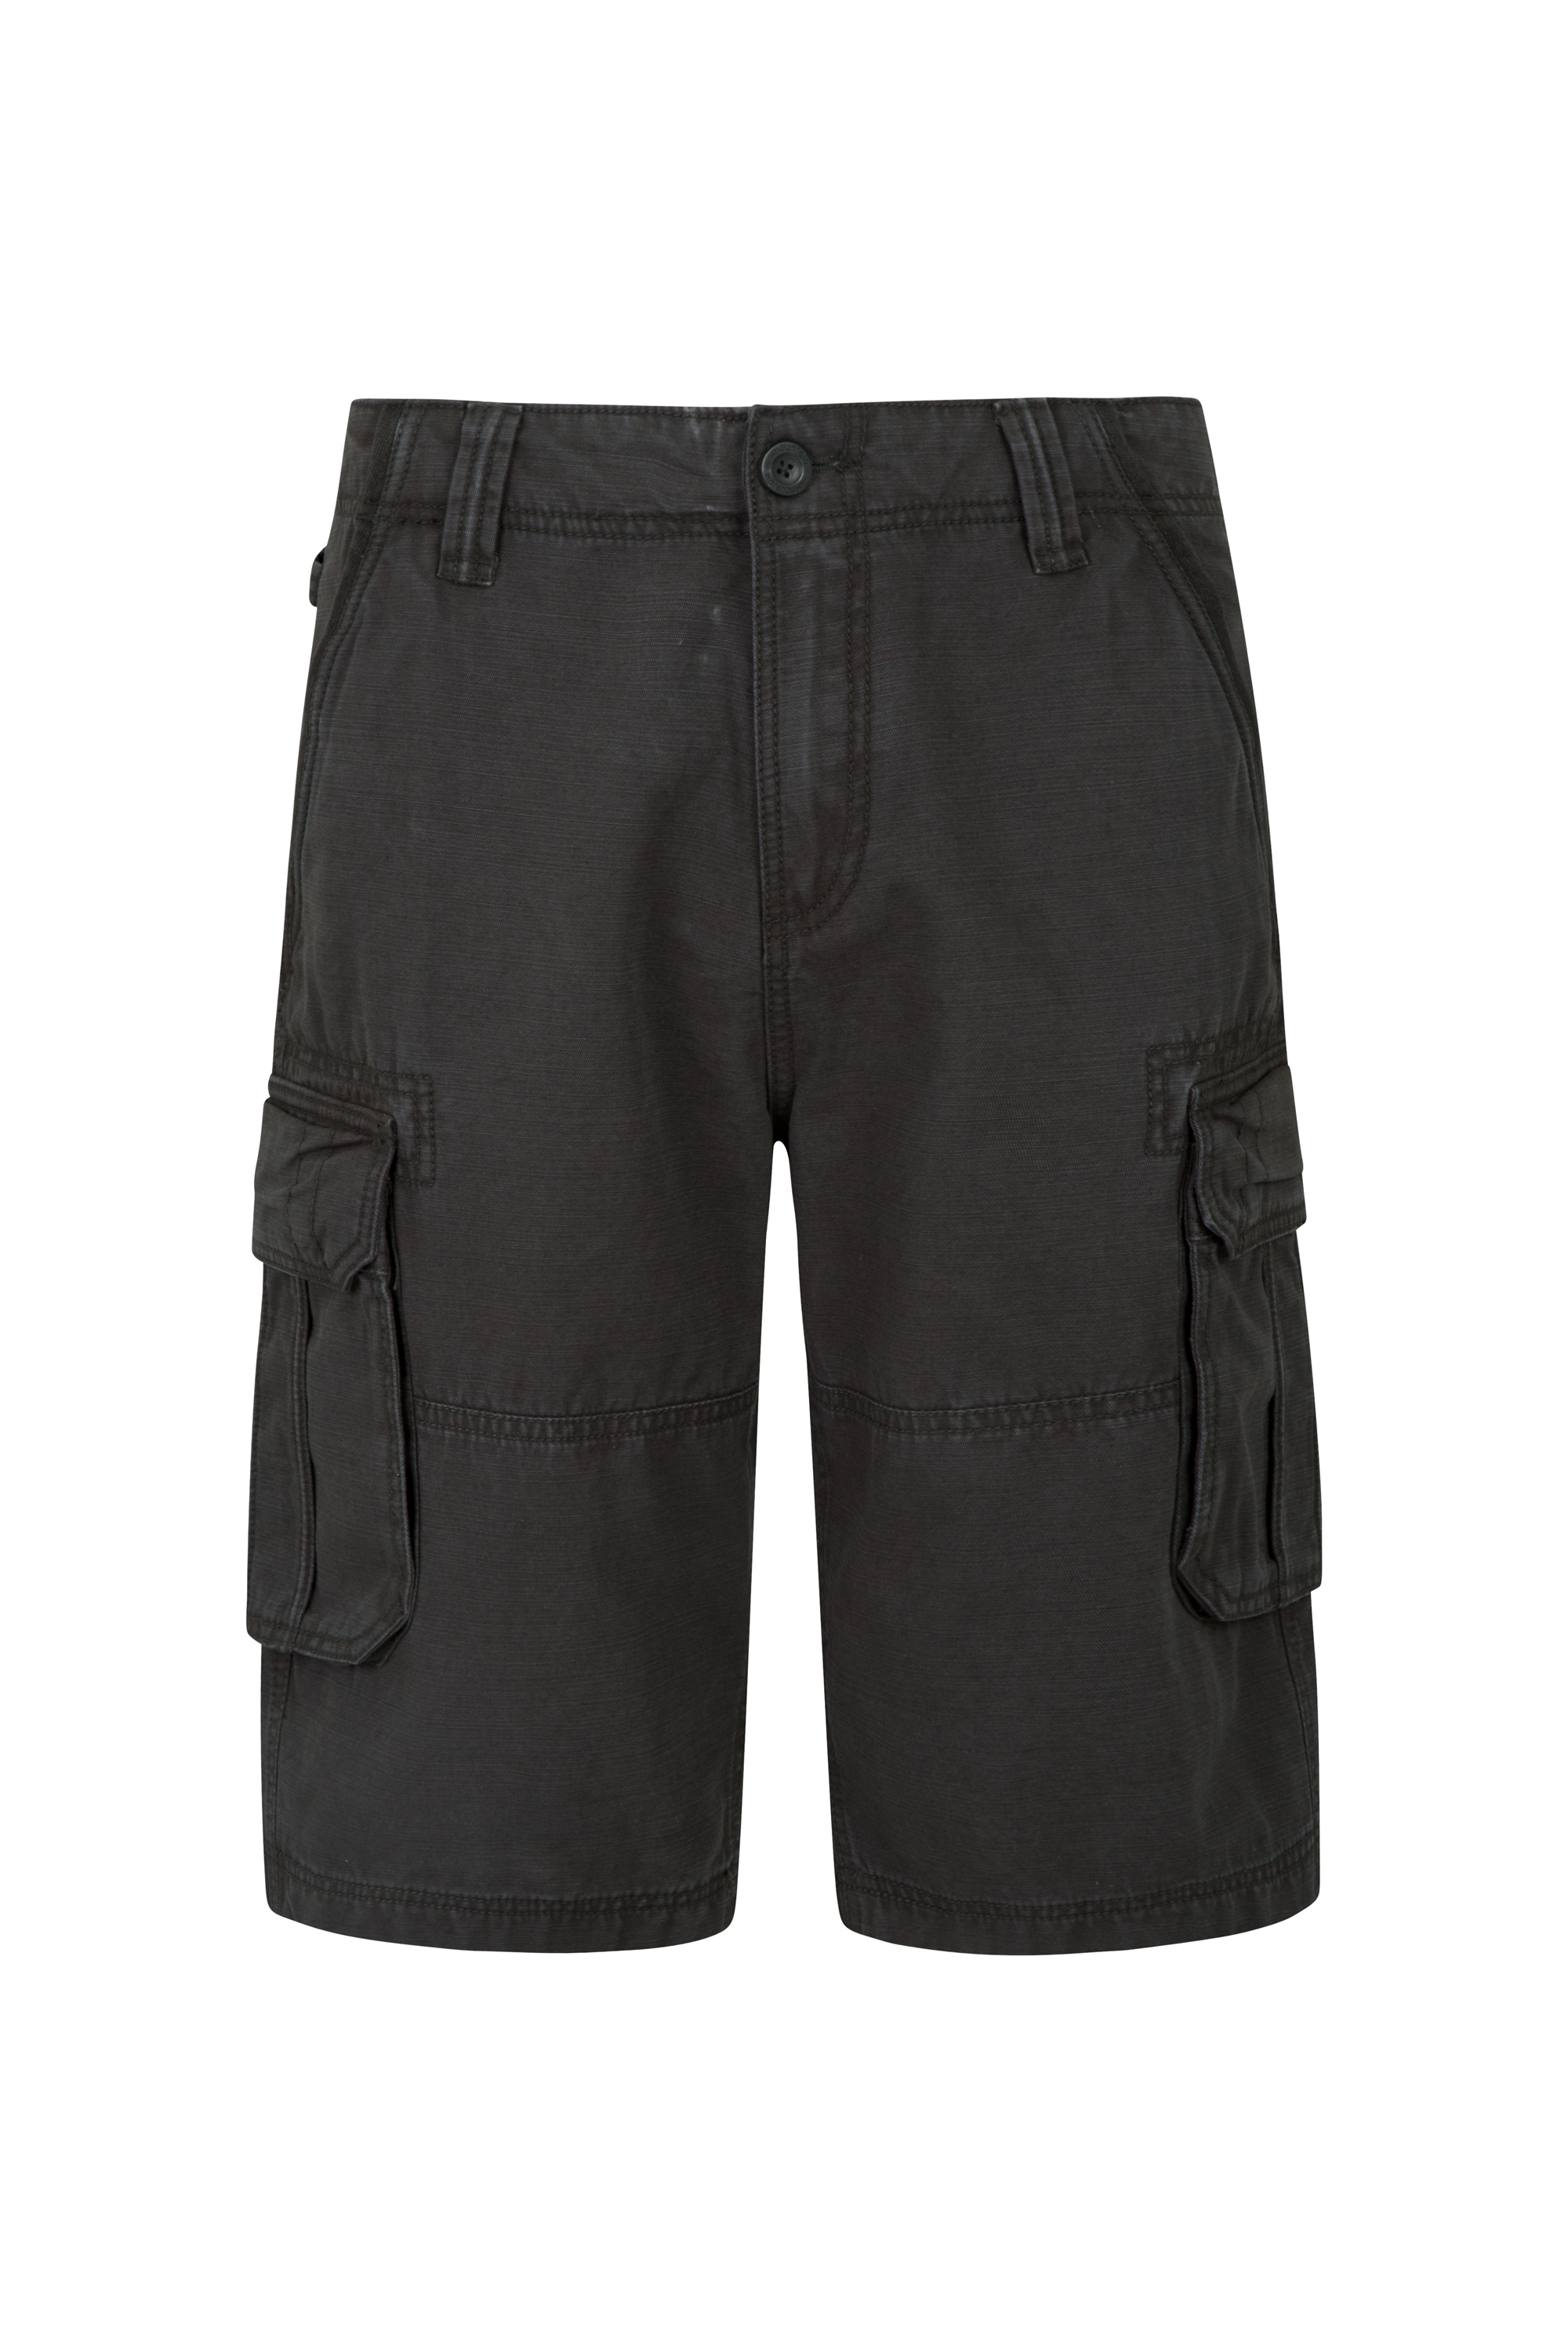 Heavy Duty Mens Cargo Shorts | Mountain Warehouse US